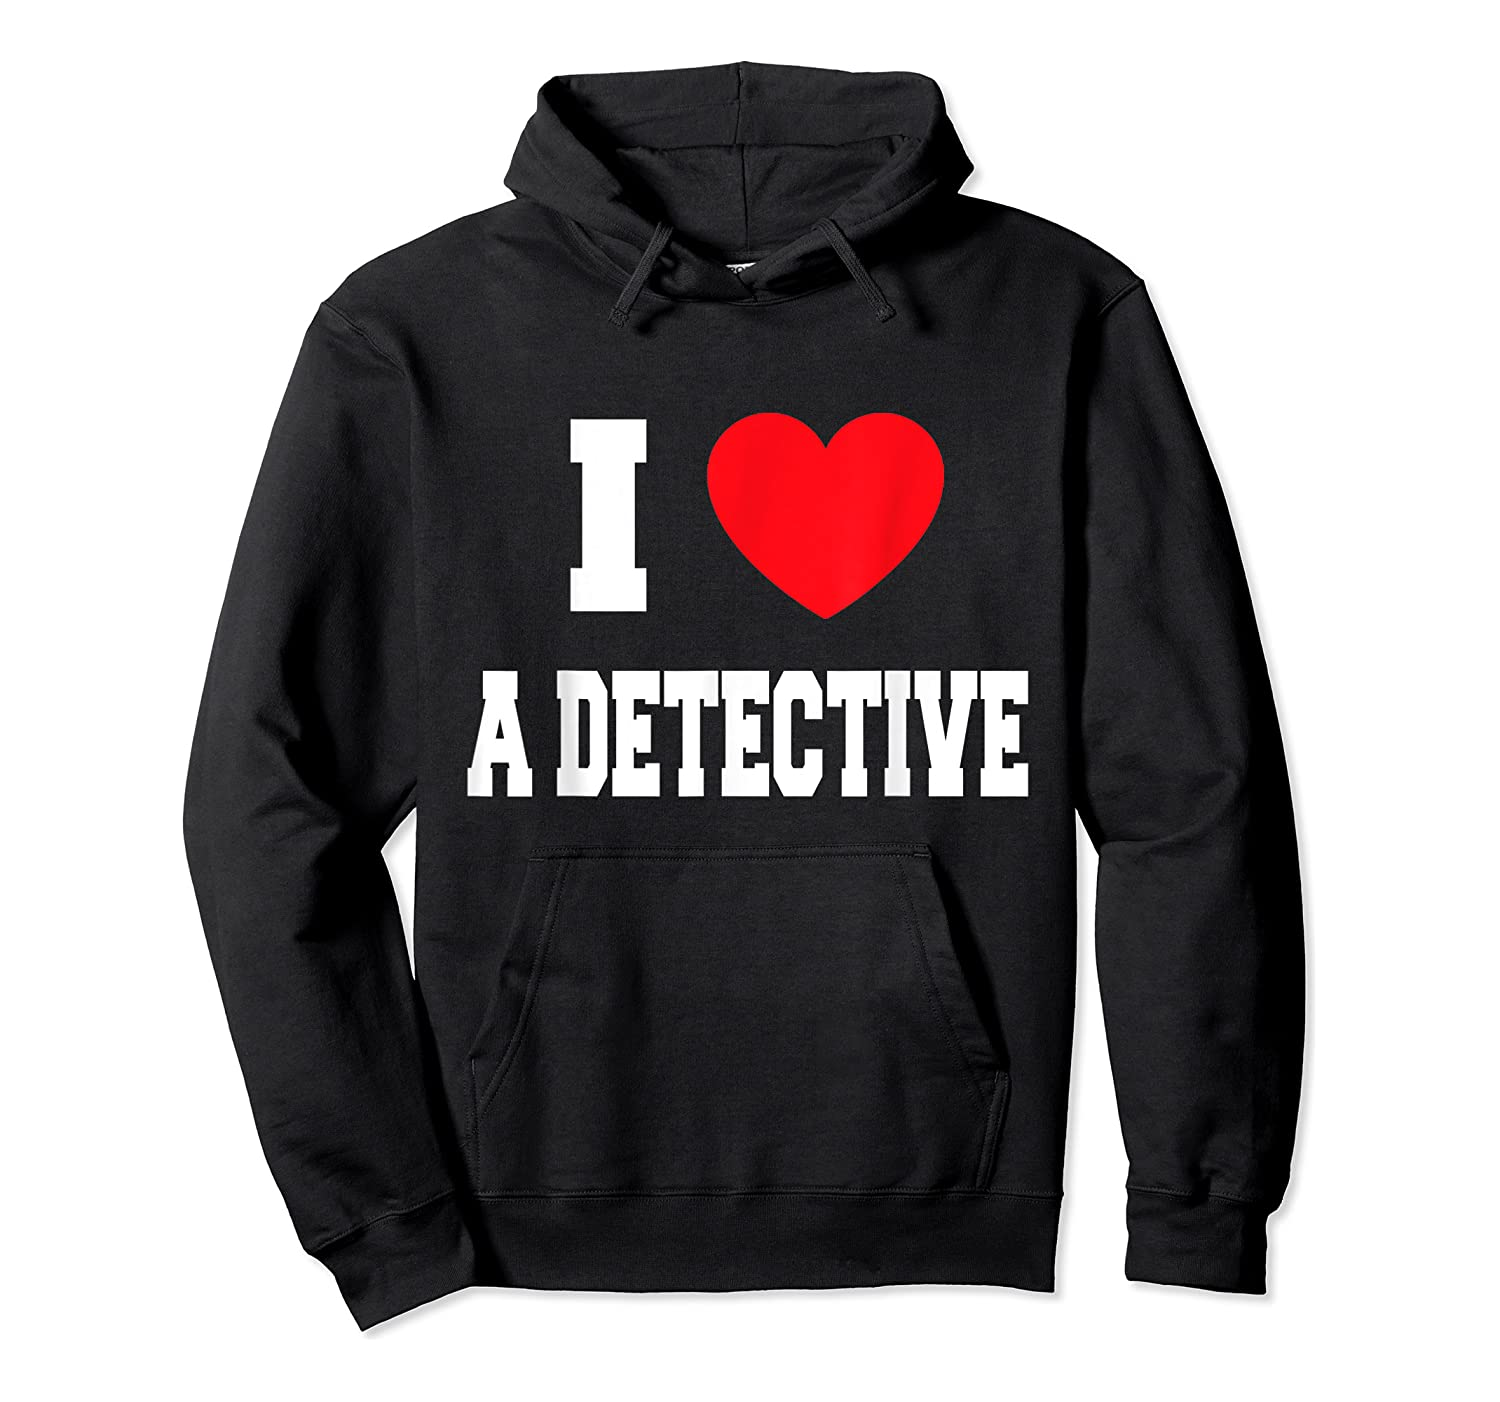 Love A Detective Shirts Unisex Pullover Hoodie